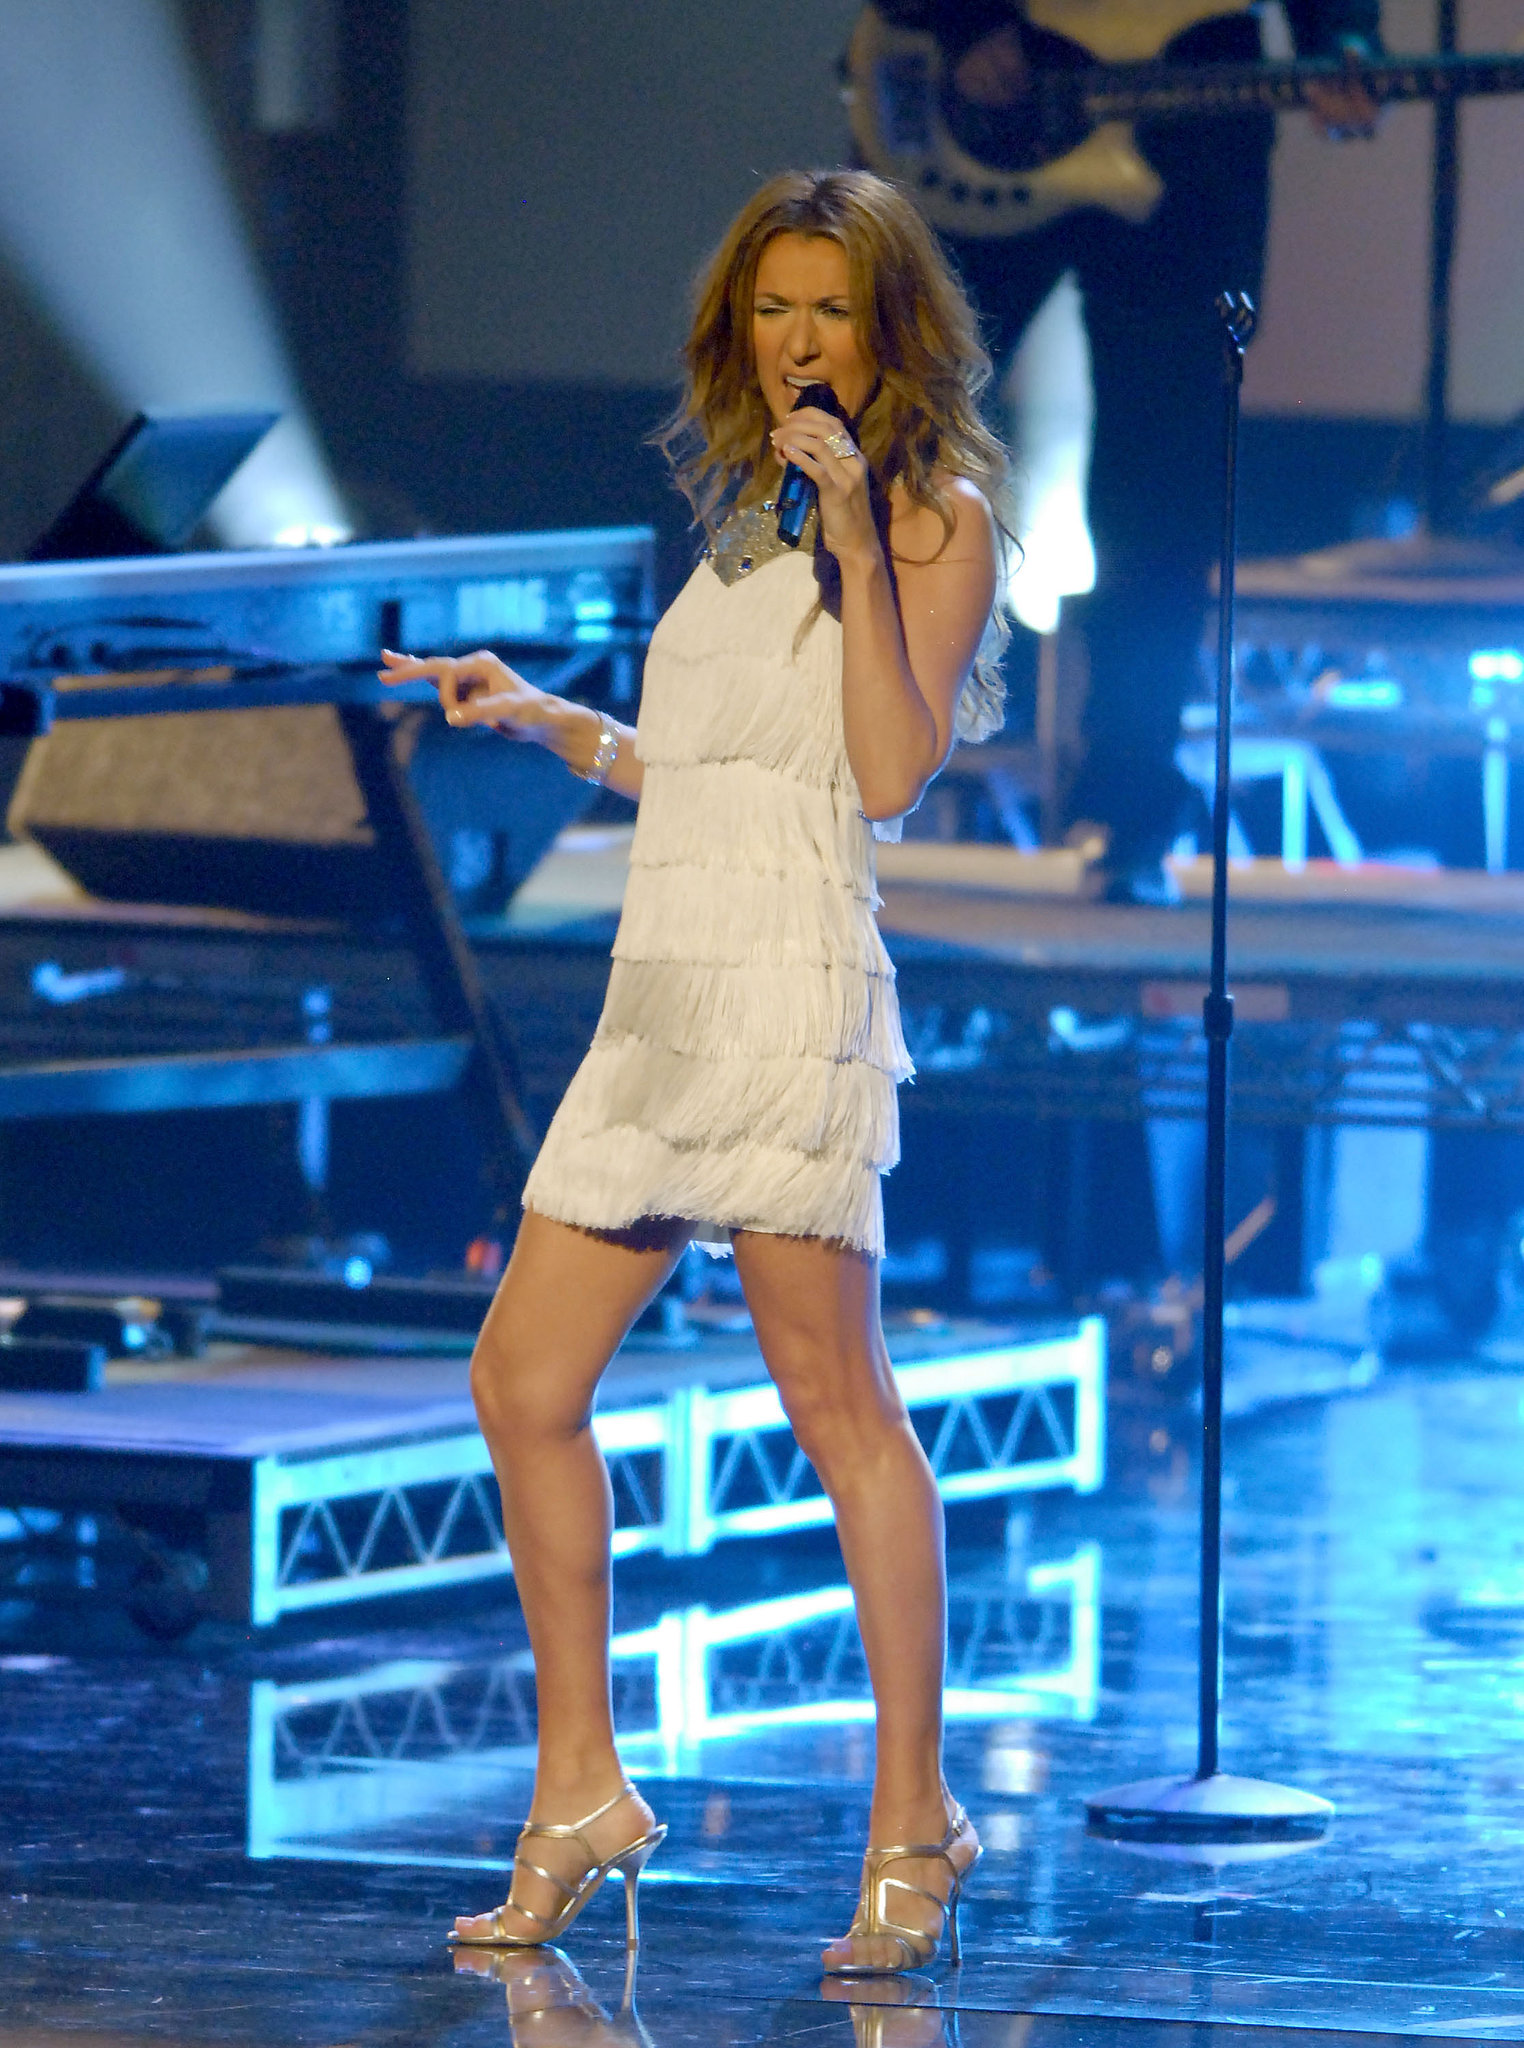 Celine Dion performed in a little white dress in 2007.